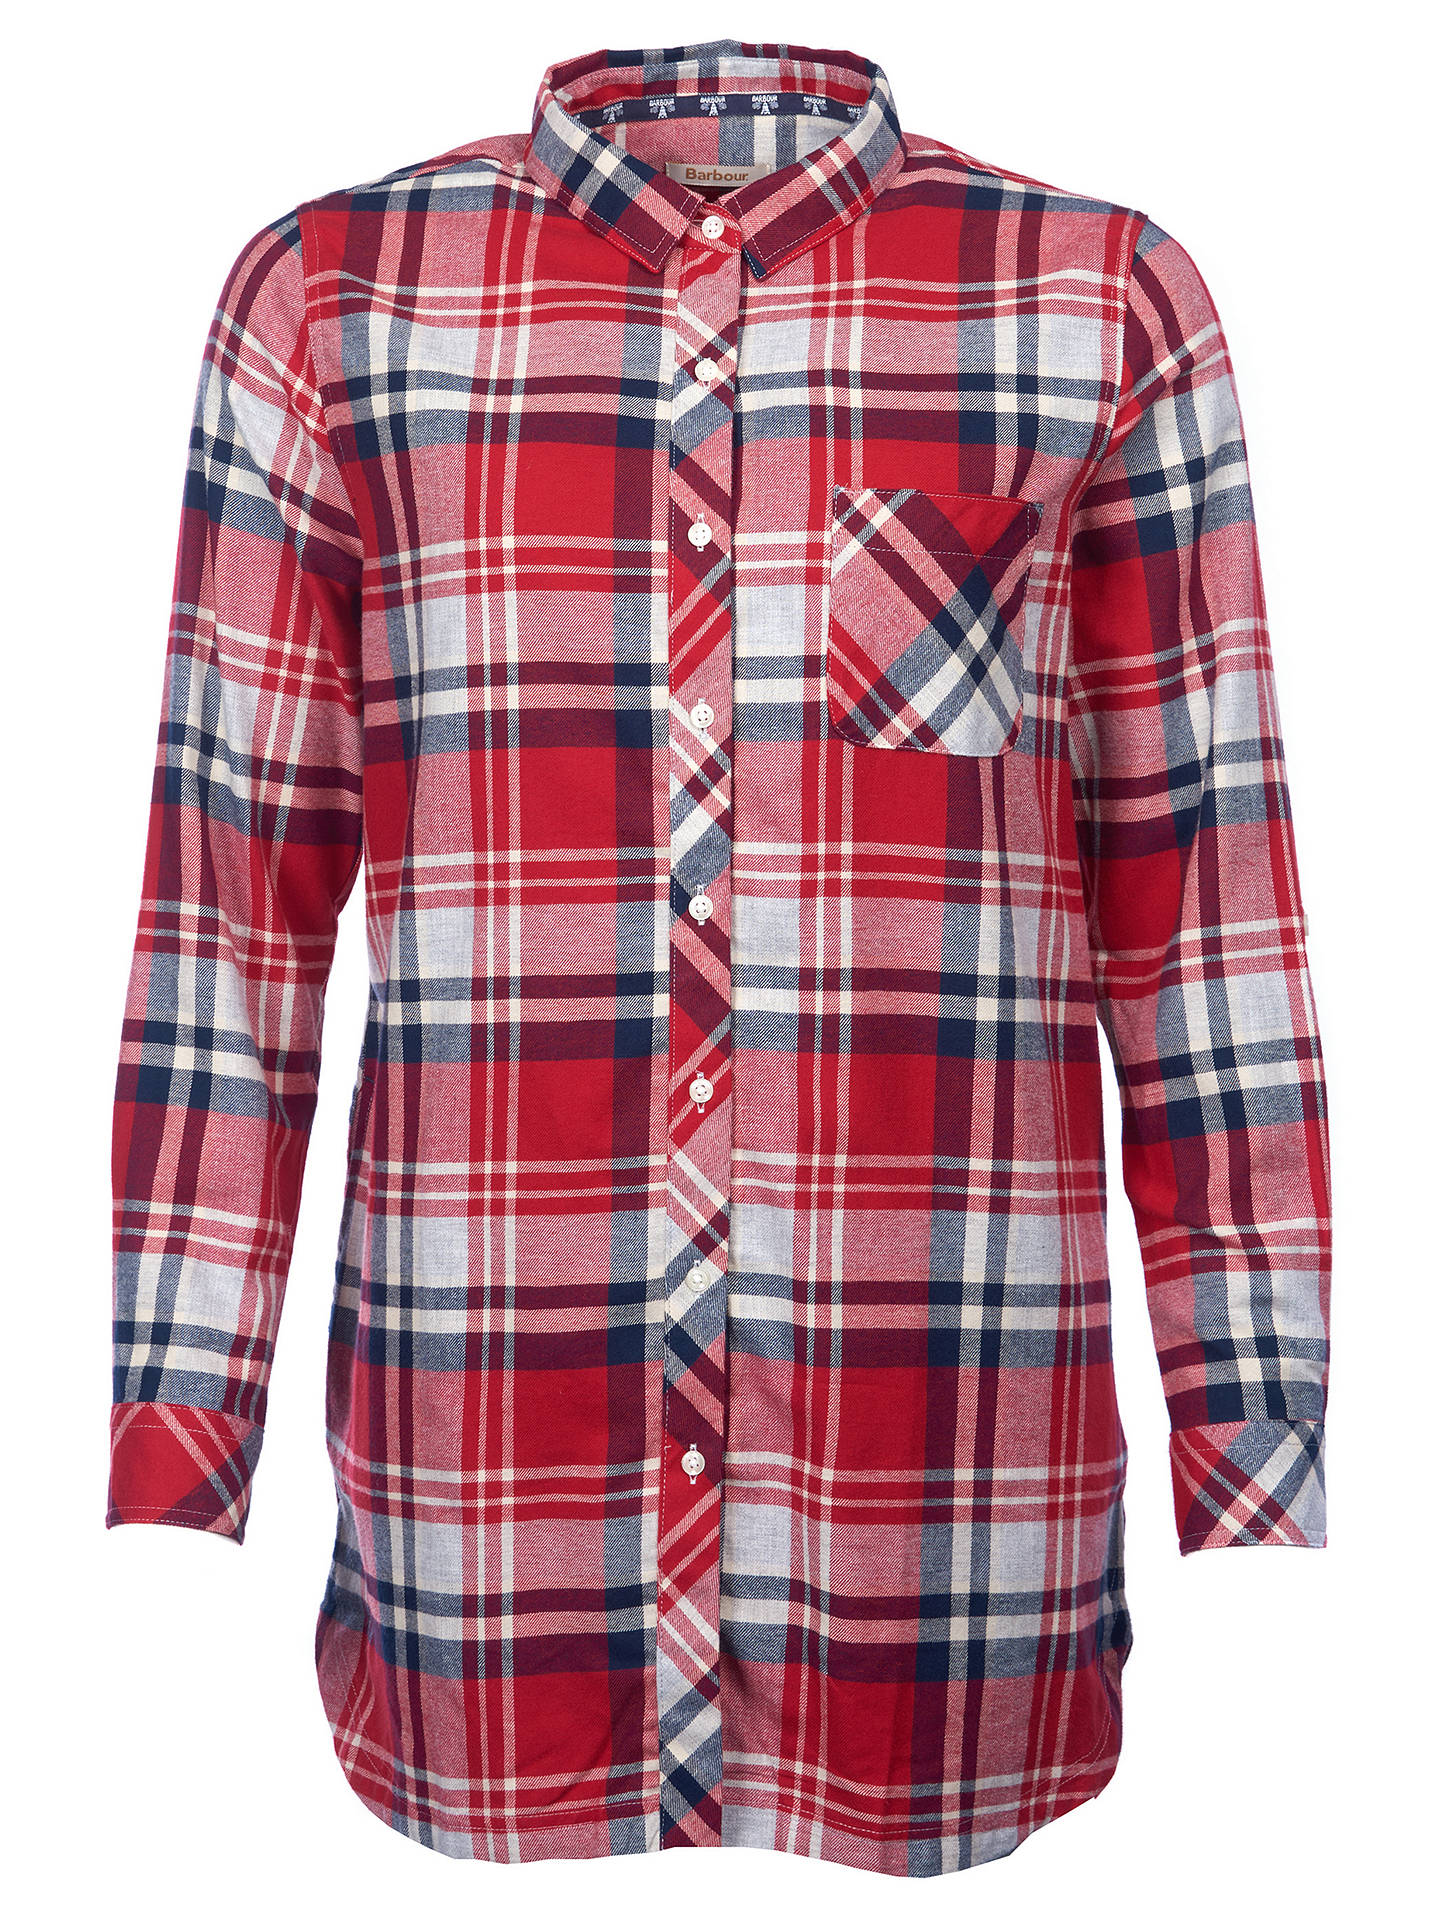 Buy Barbour Bressay Check Shirt, Grey/Chilli Red, 12 Online at johnlewis.com